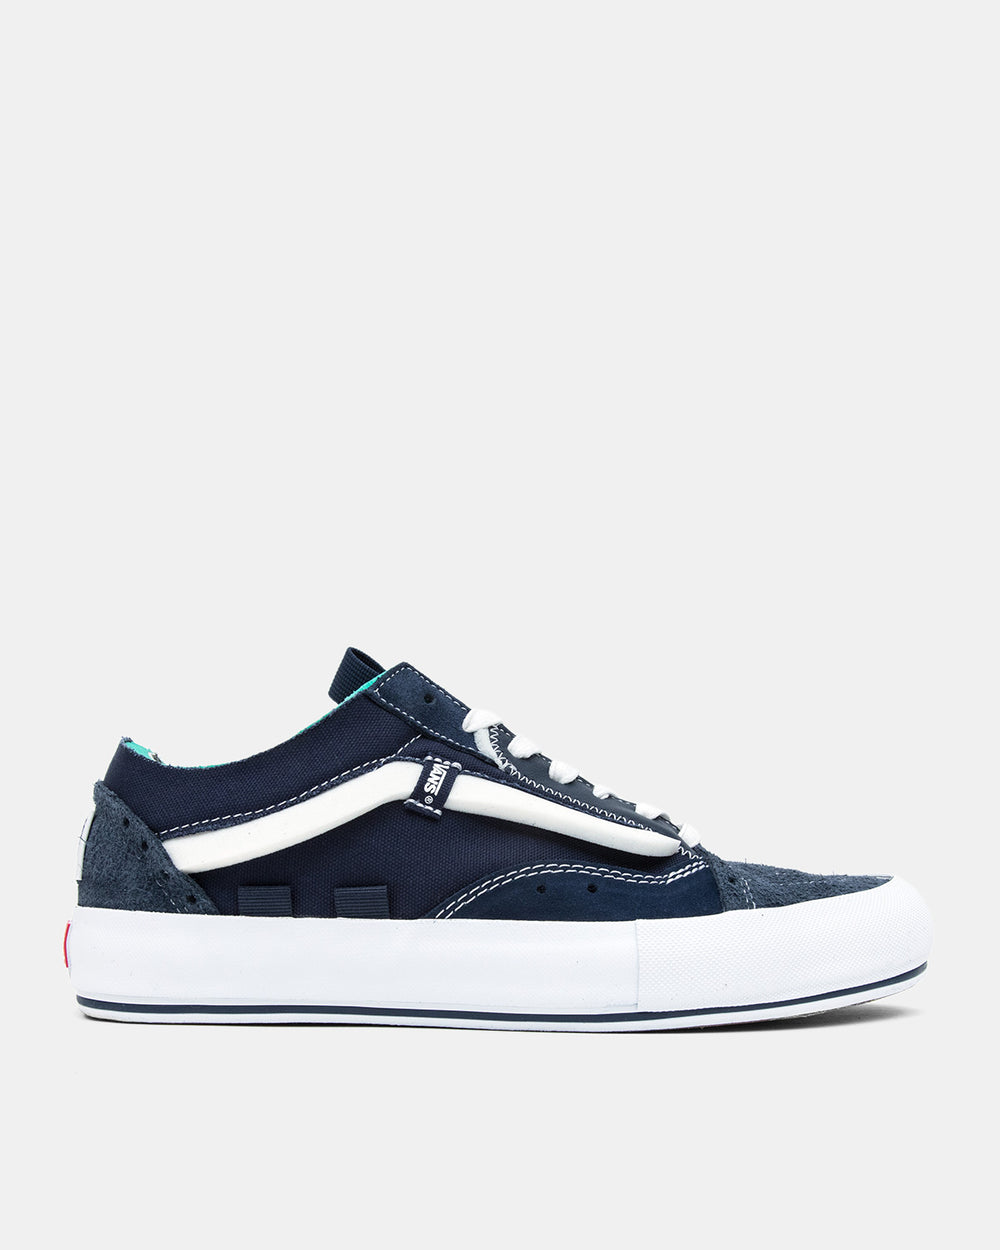 Vans Vault - Old Skool Cap Regrind LX (Dress Blues | White)